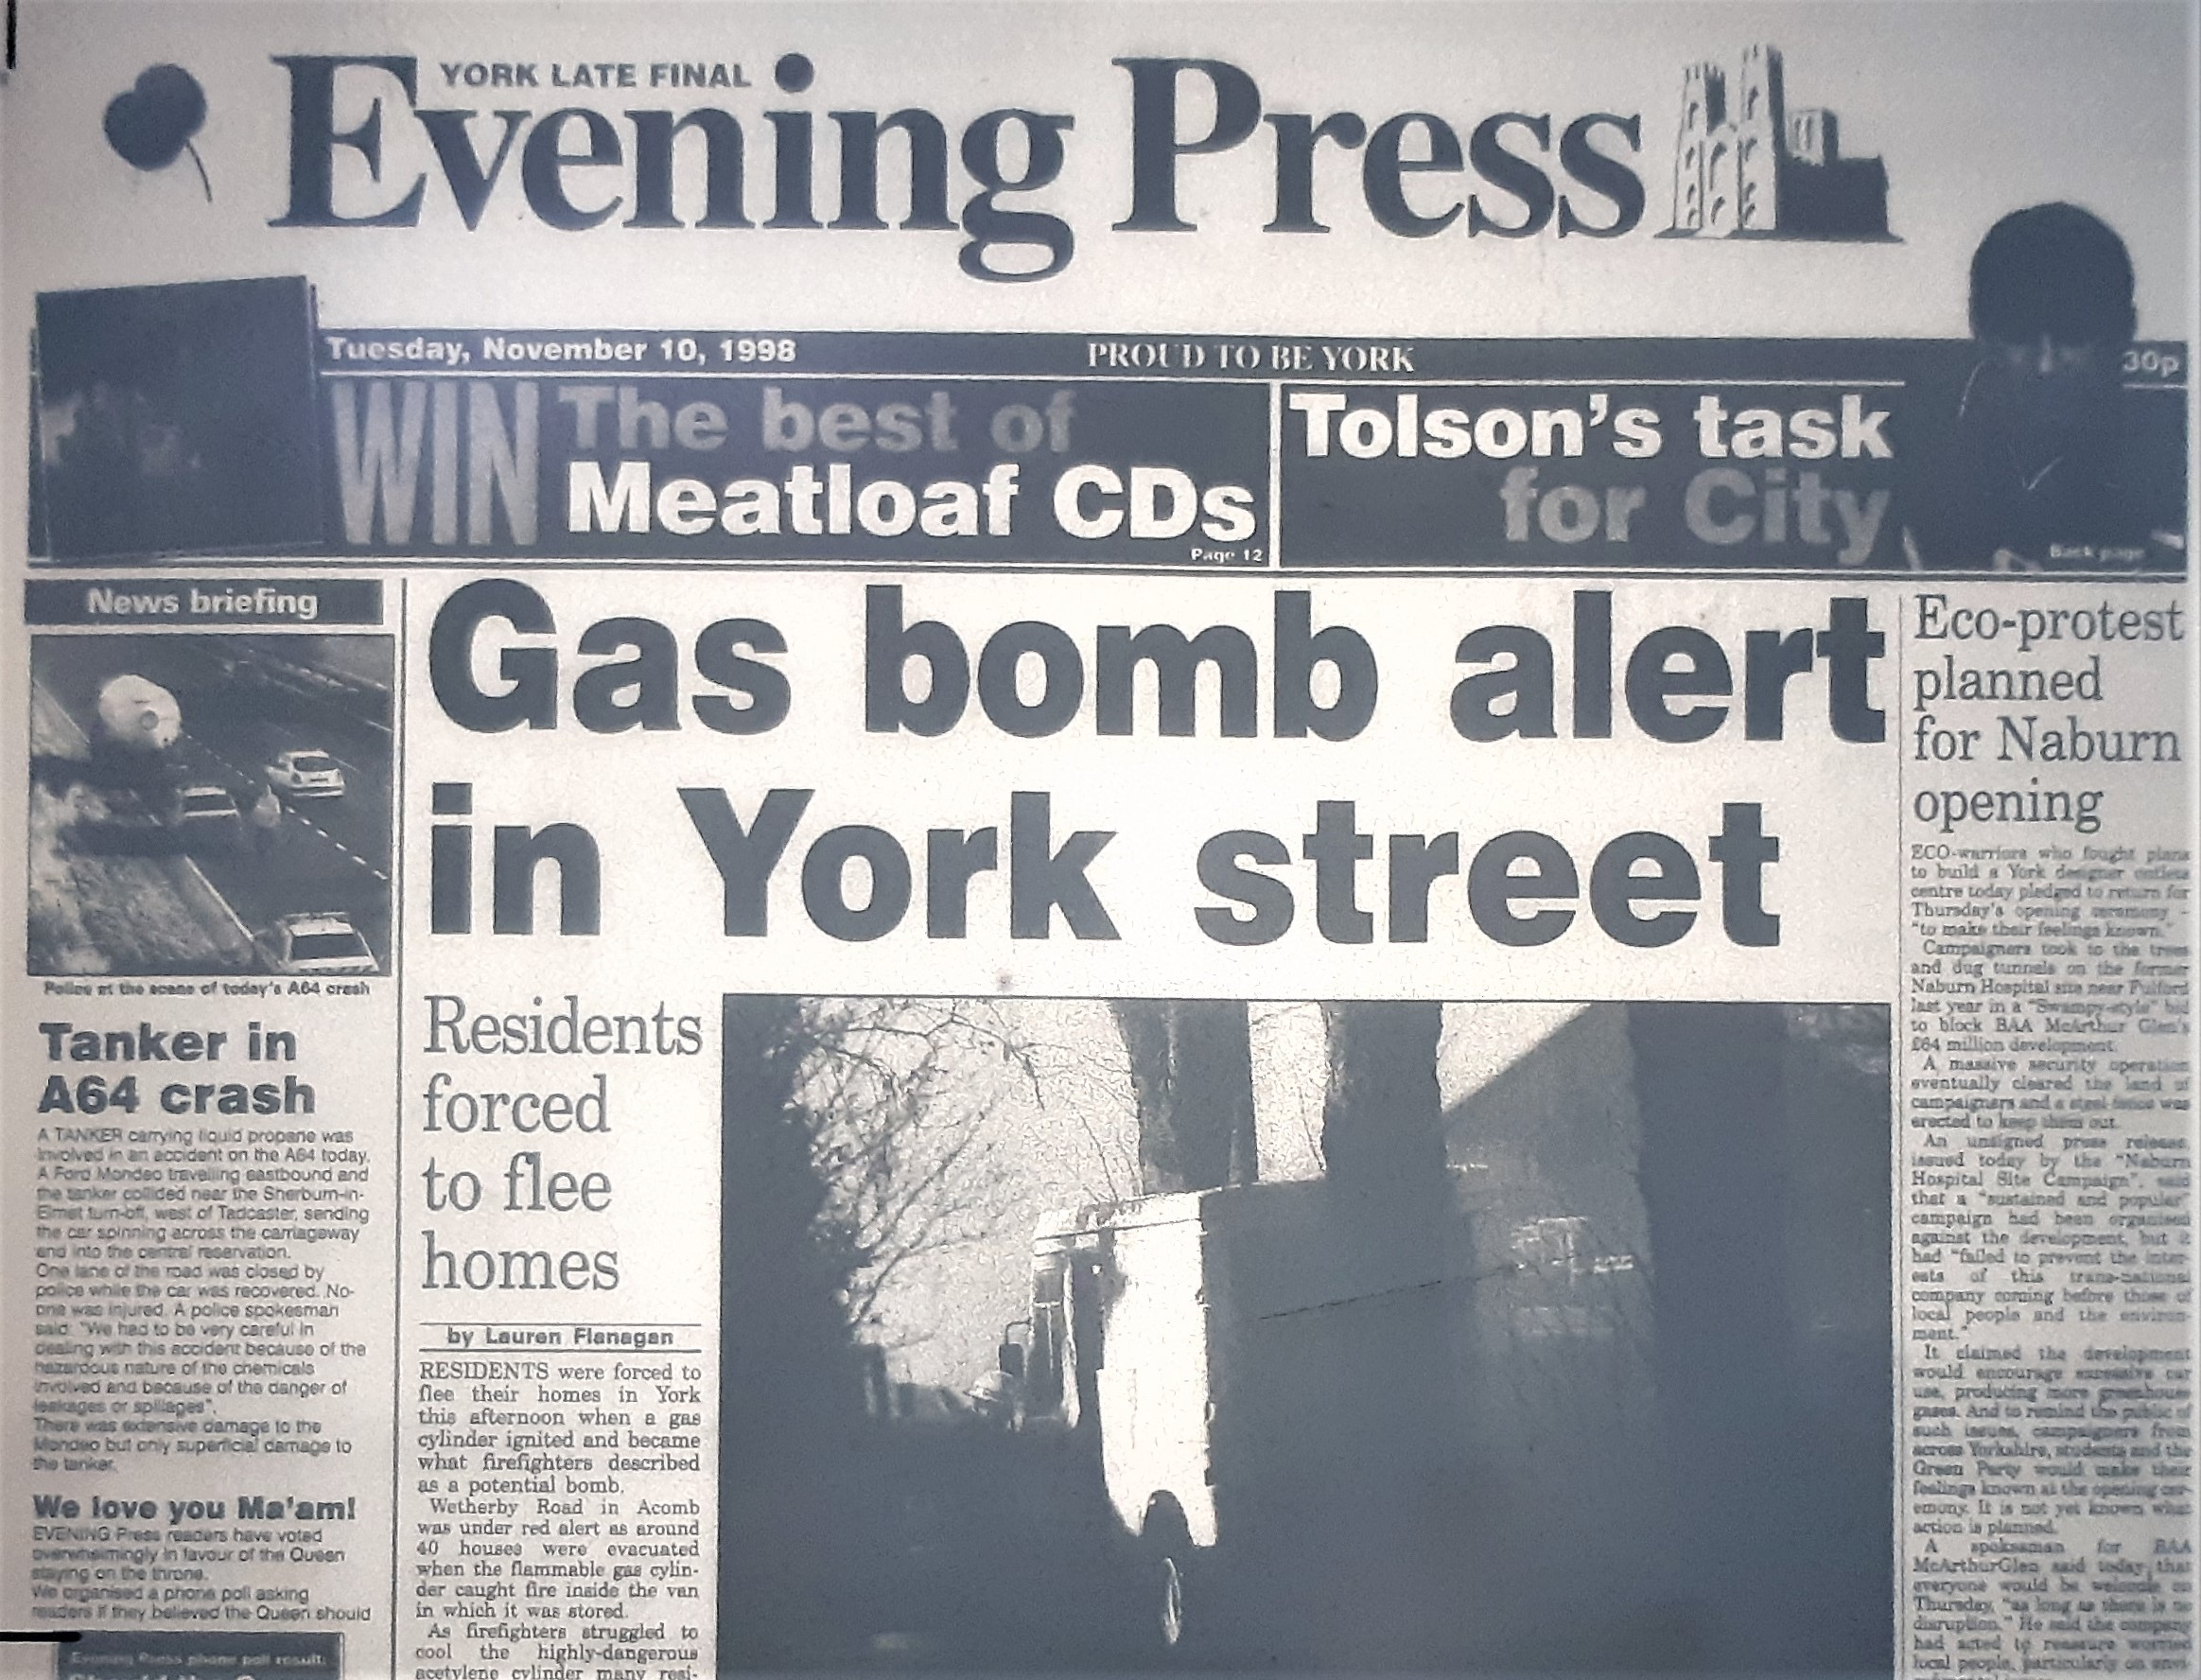 The front page of the Evening Press from November 10, 1998